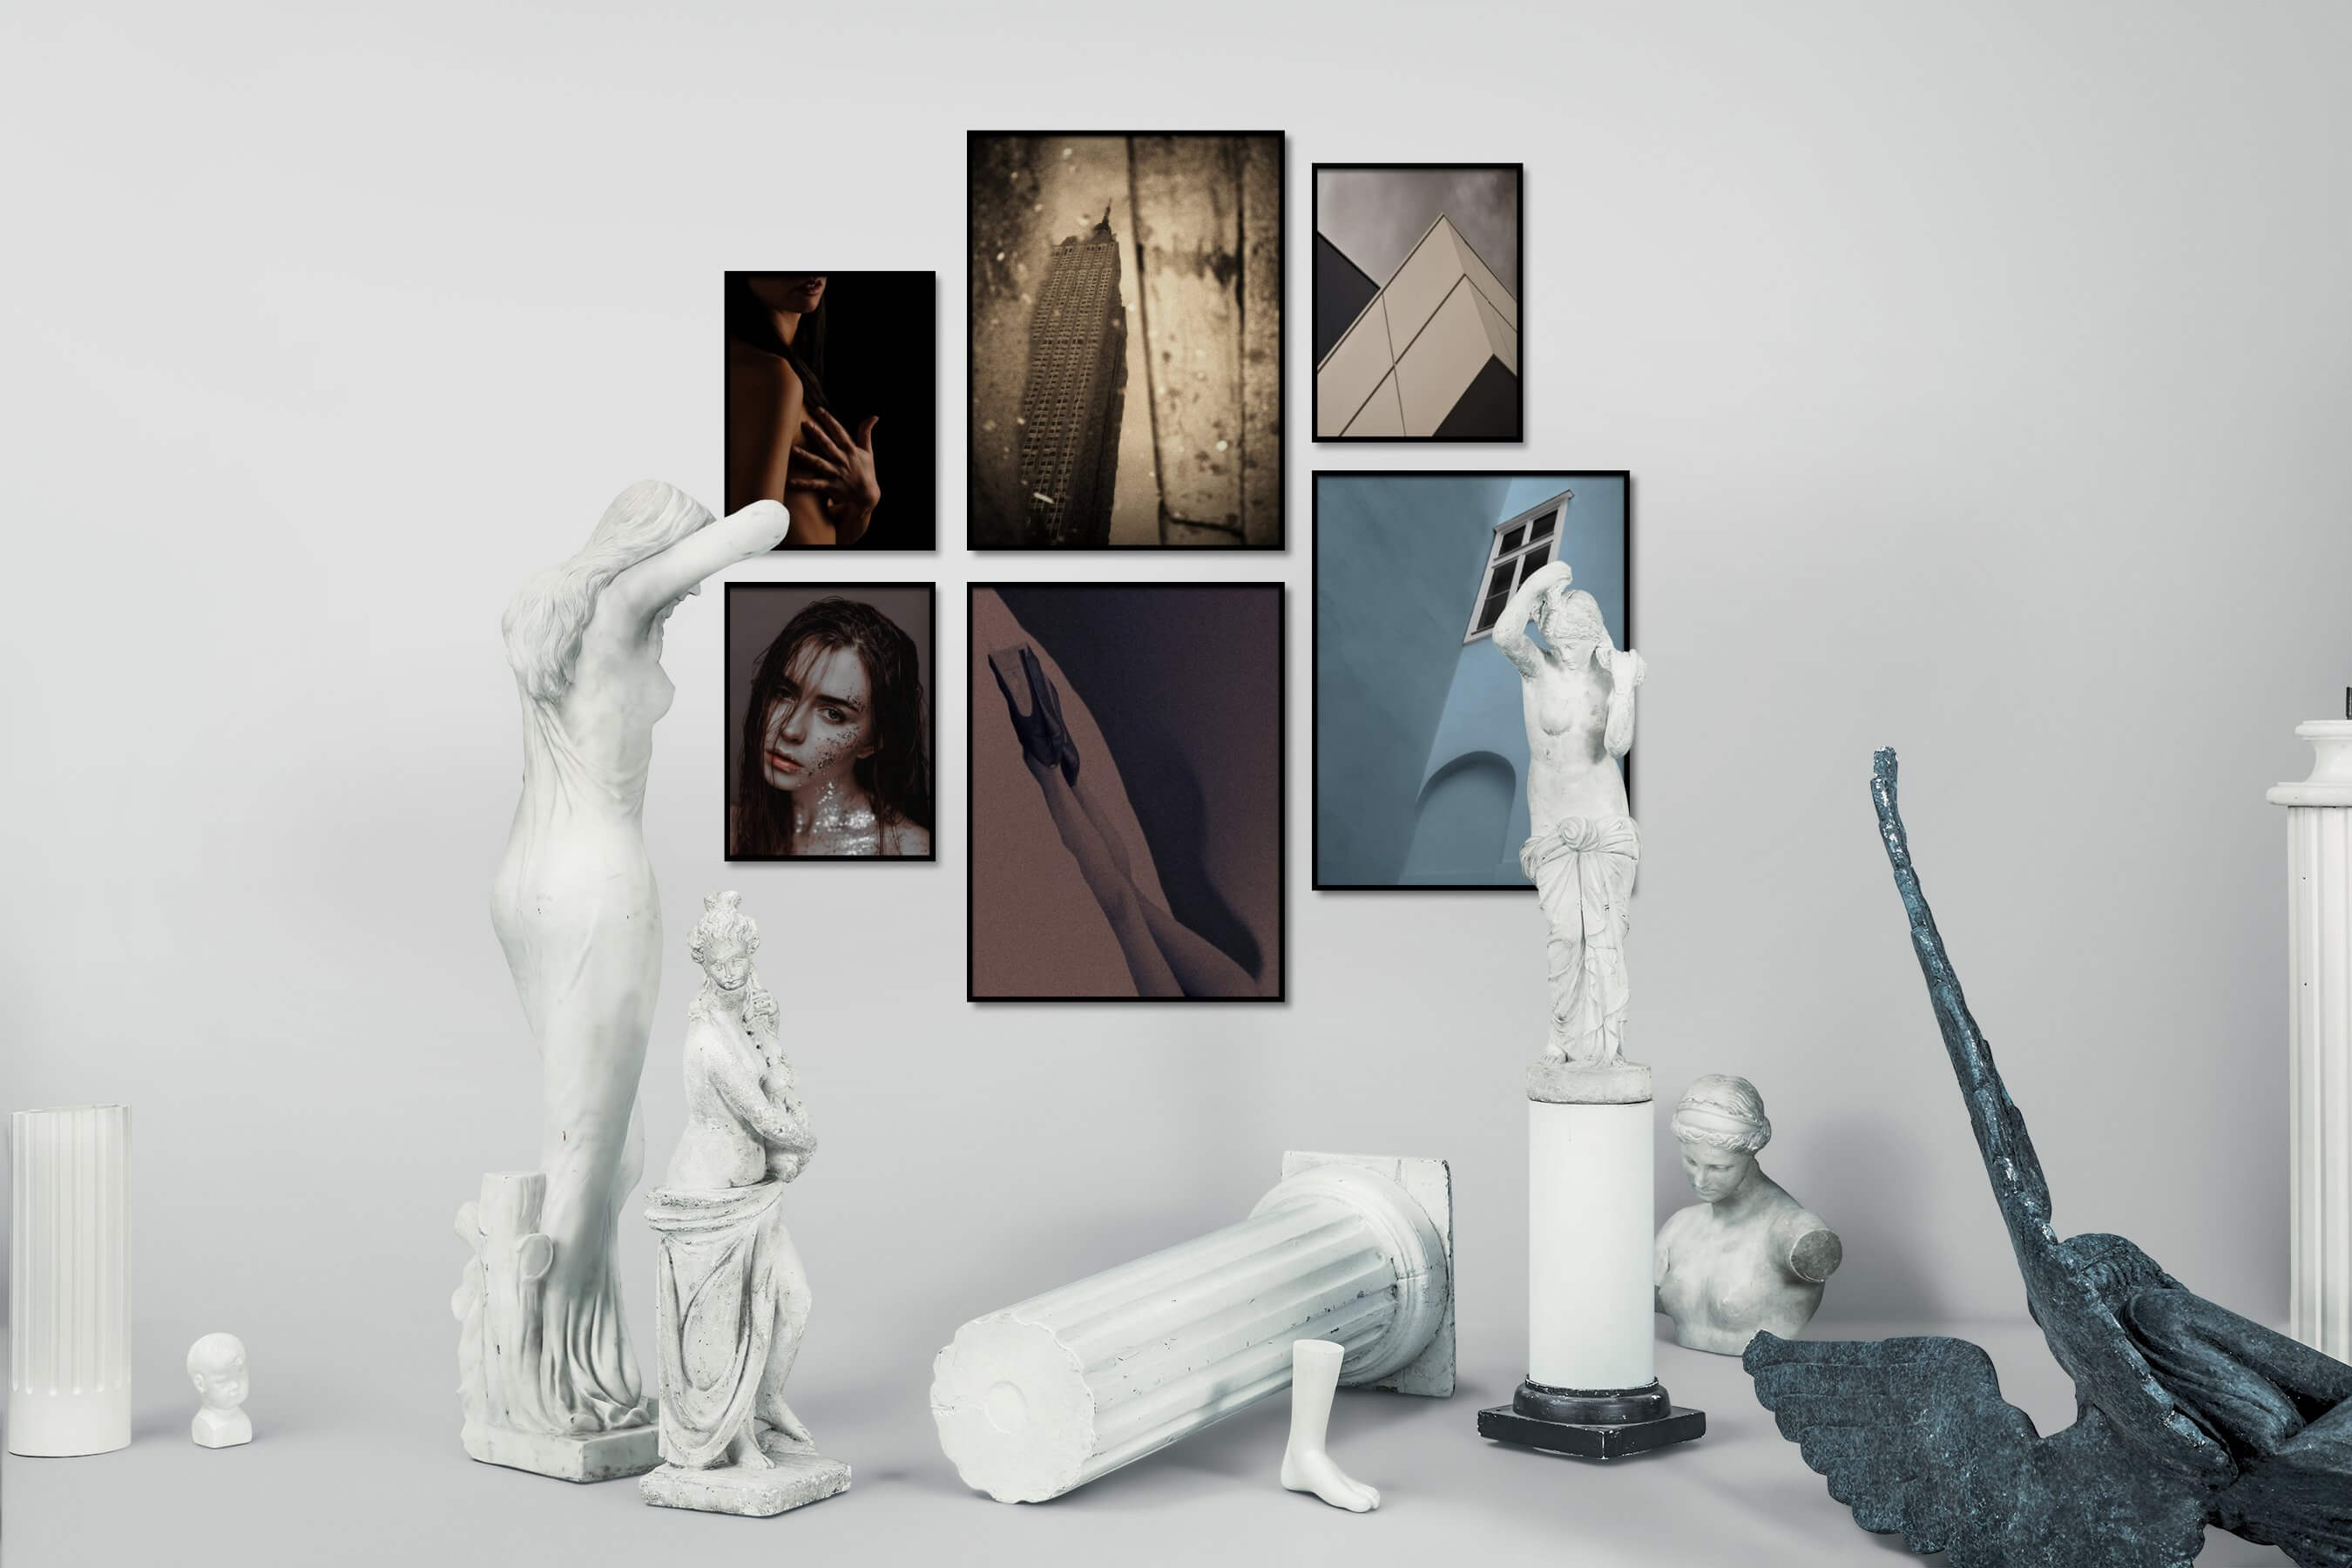 Gallery wall idea with six framed pictures arranged on a wall depicting Fashion & Beauty, Dark Tones, For the Moderate, City Life, Americana, Vintage, and For the Minimalist